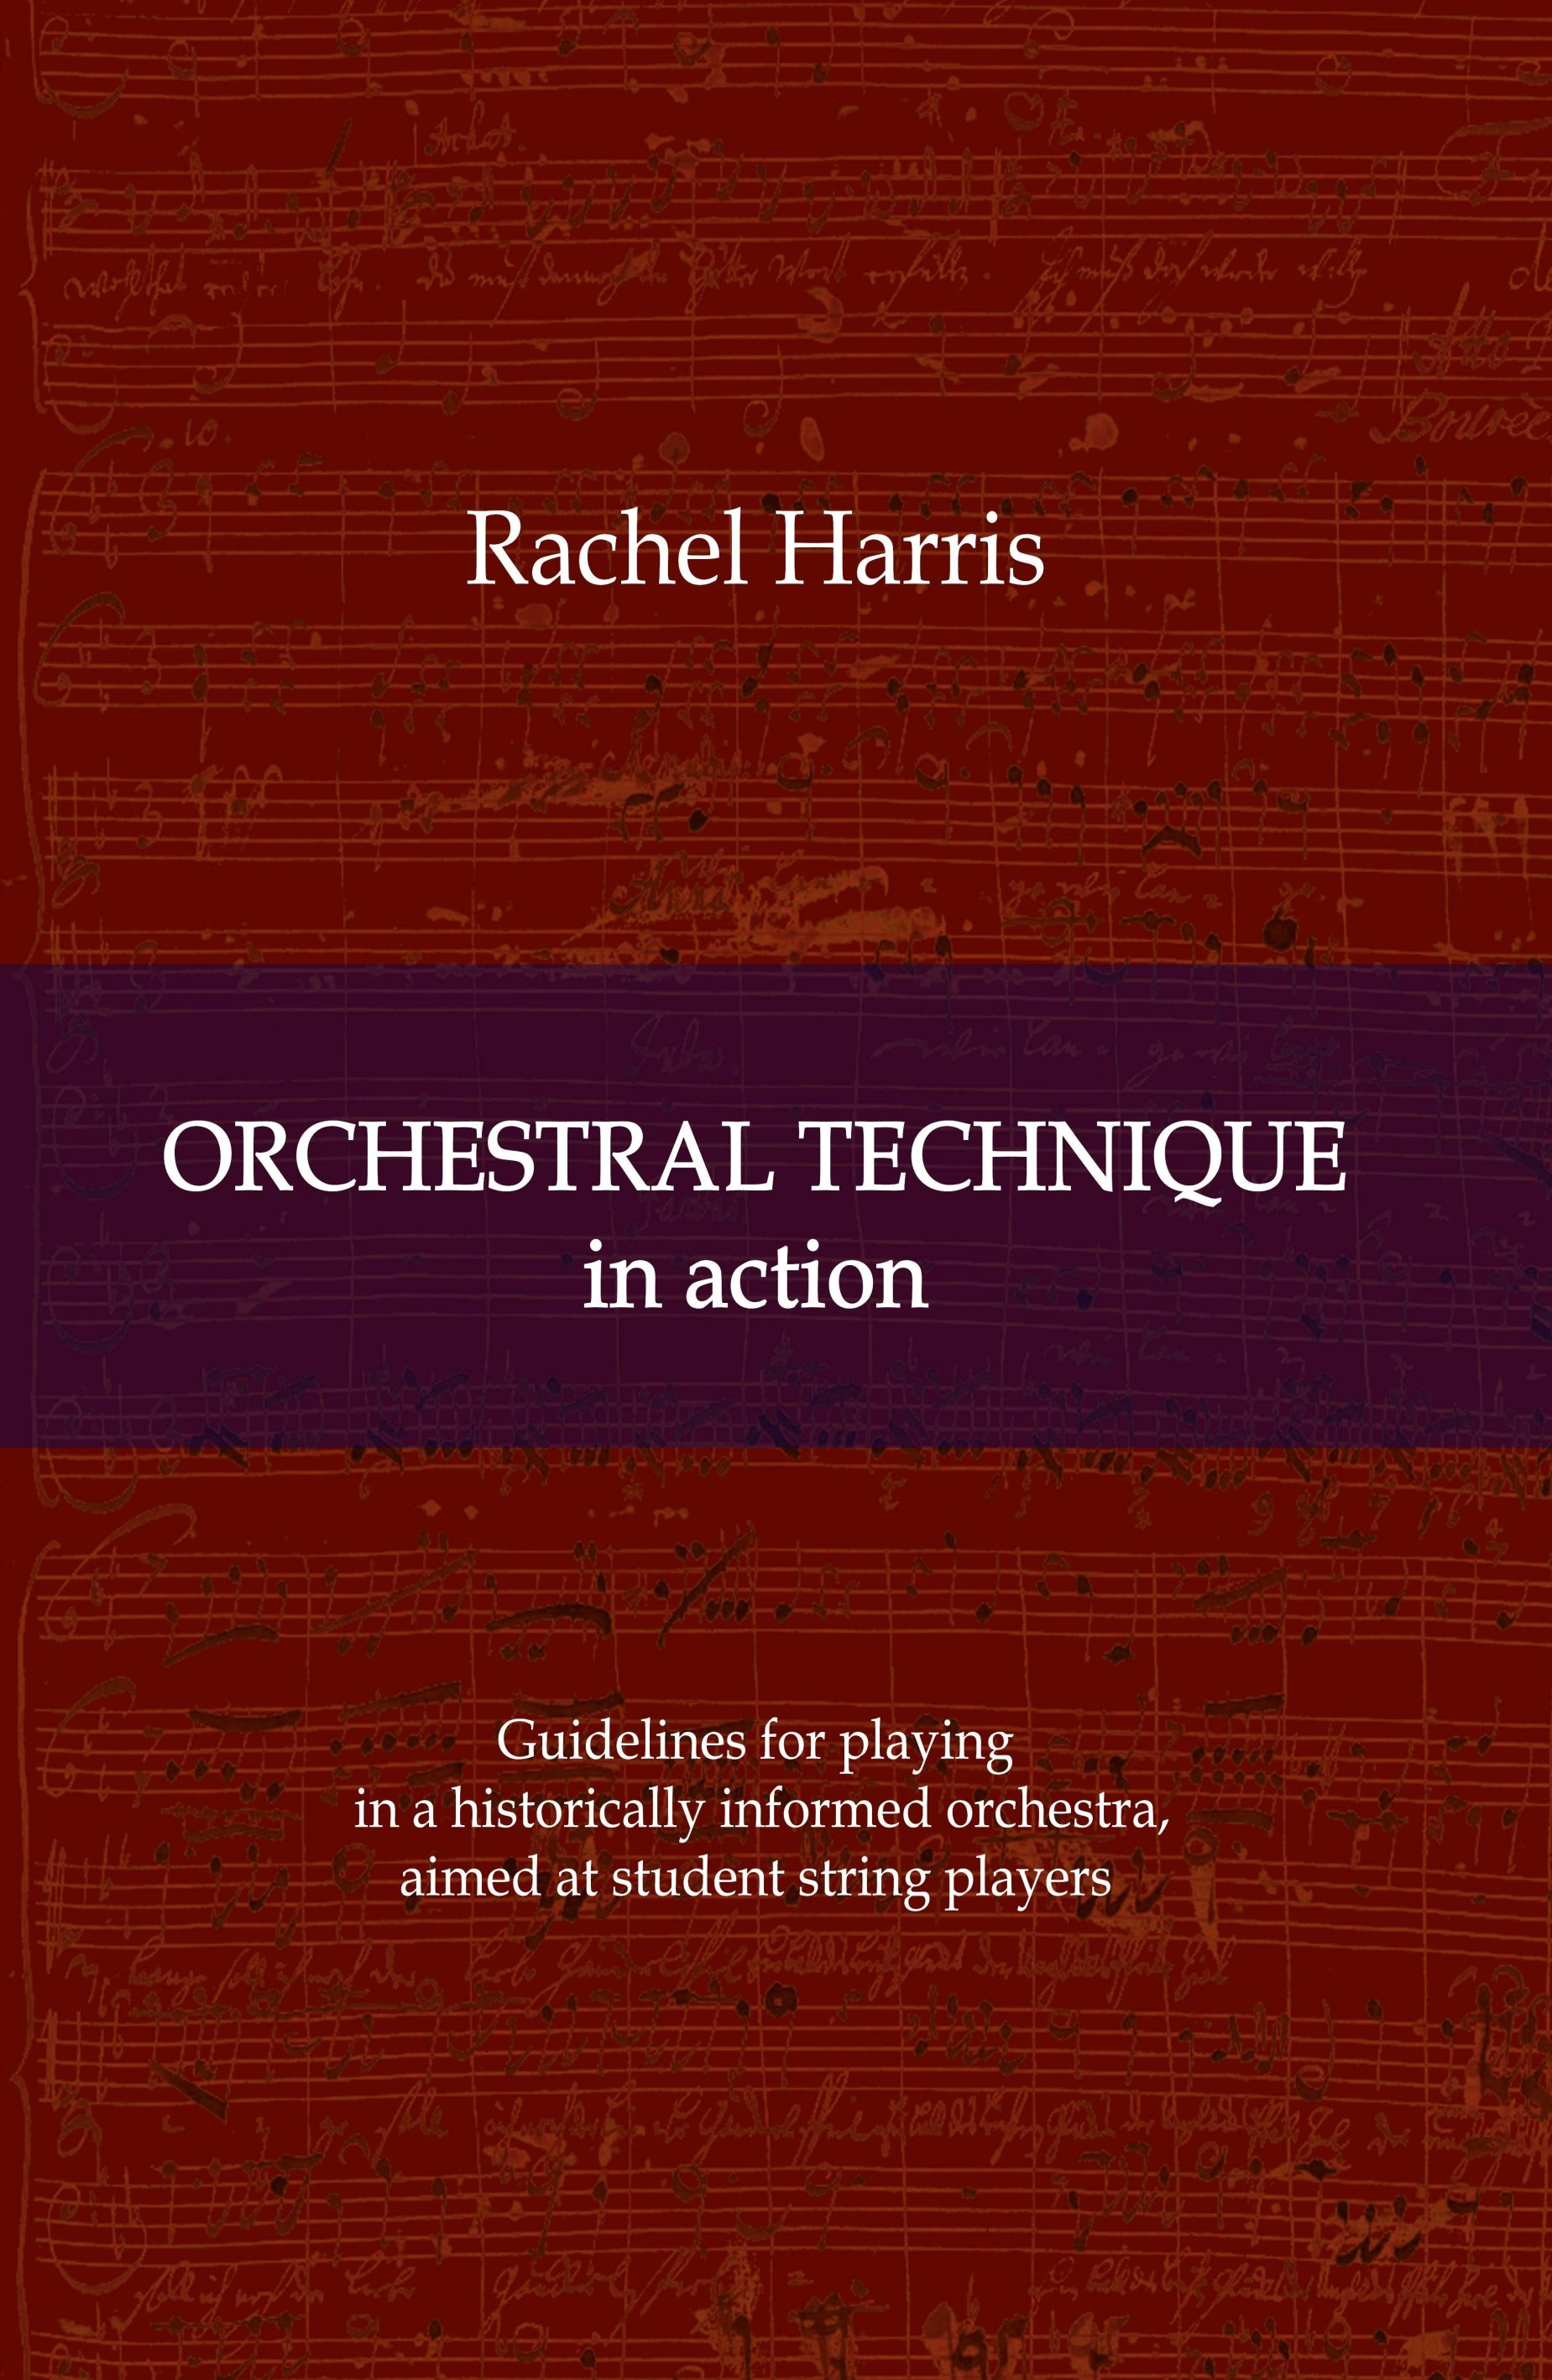 Orchestral Technique in action - Helpful guidelines for new string players